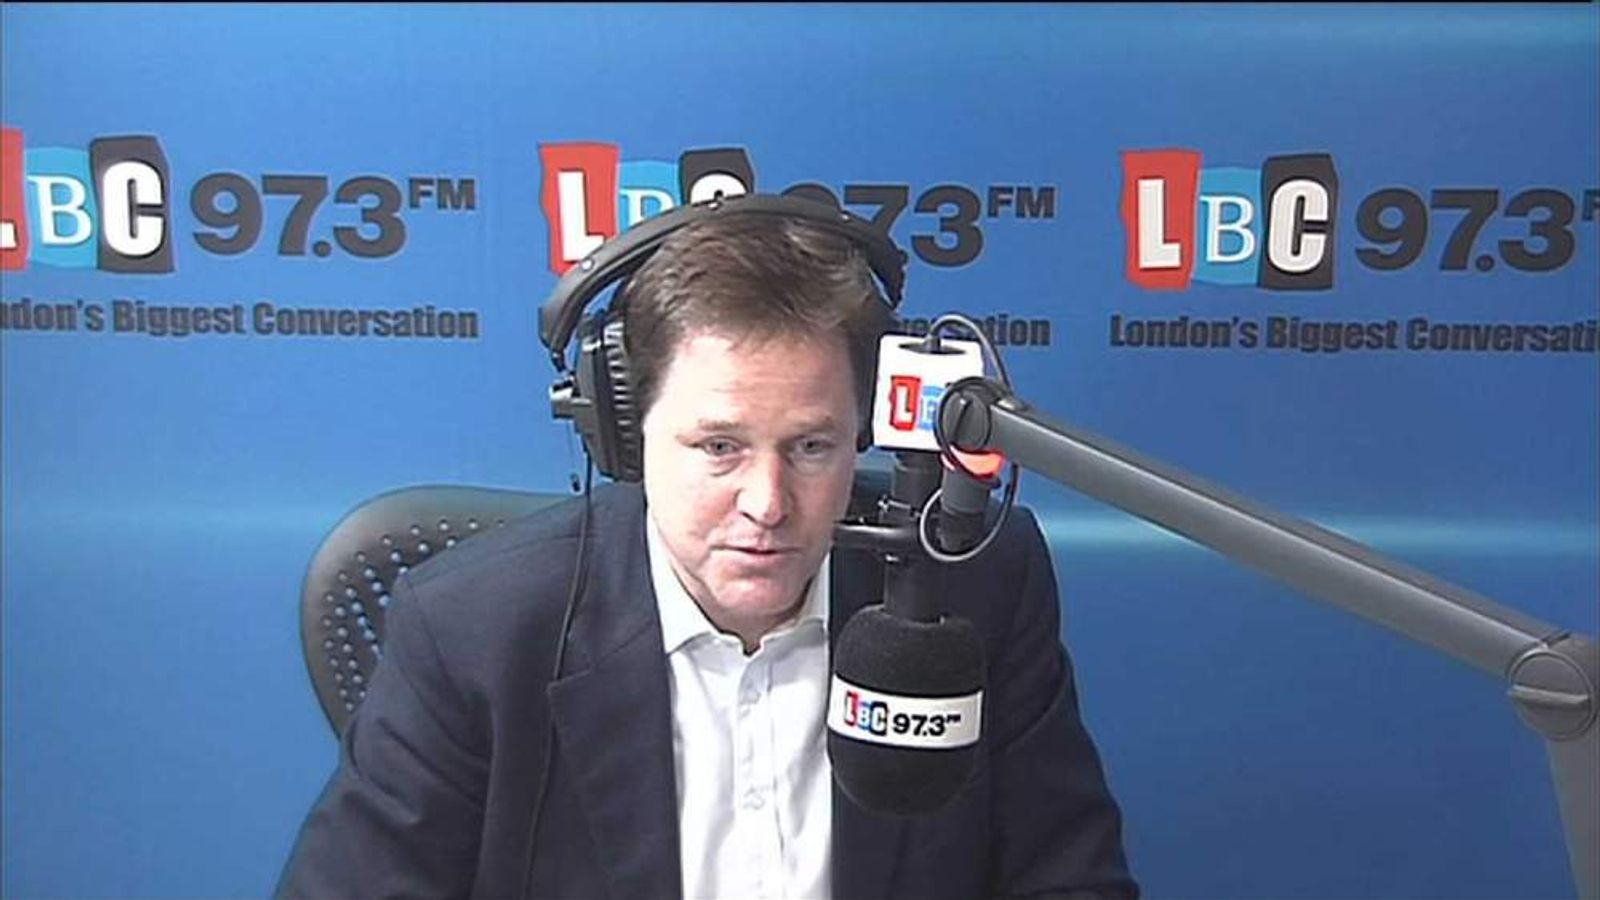 Nick Clegg on LBC